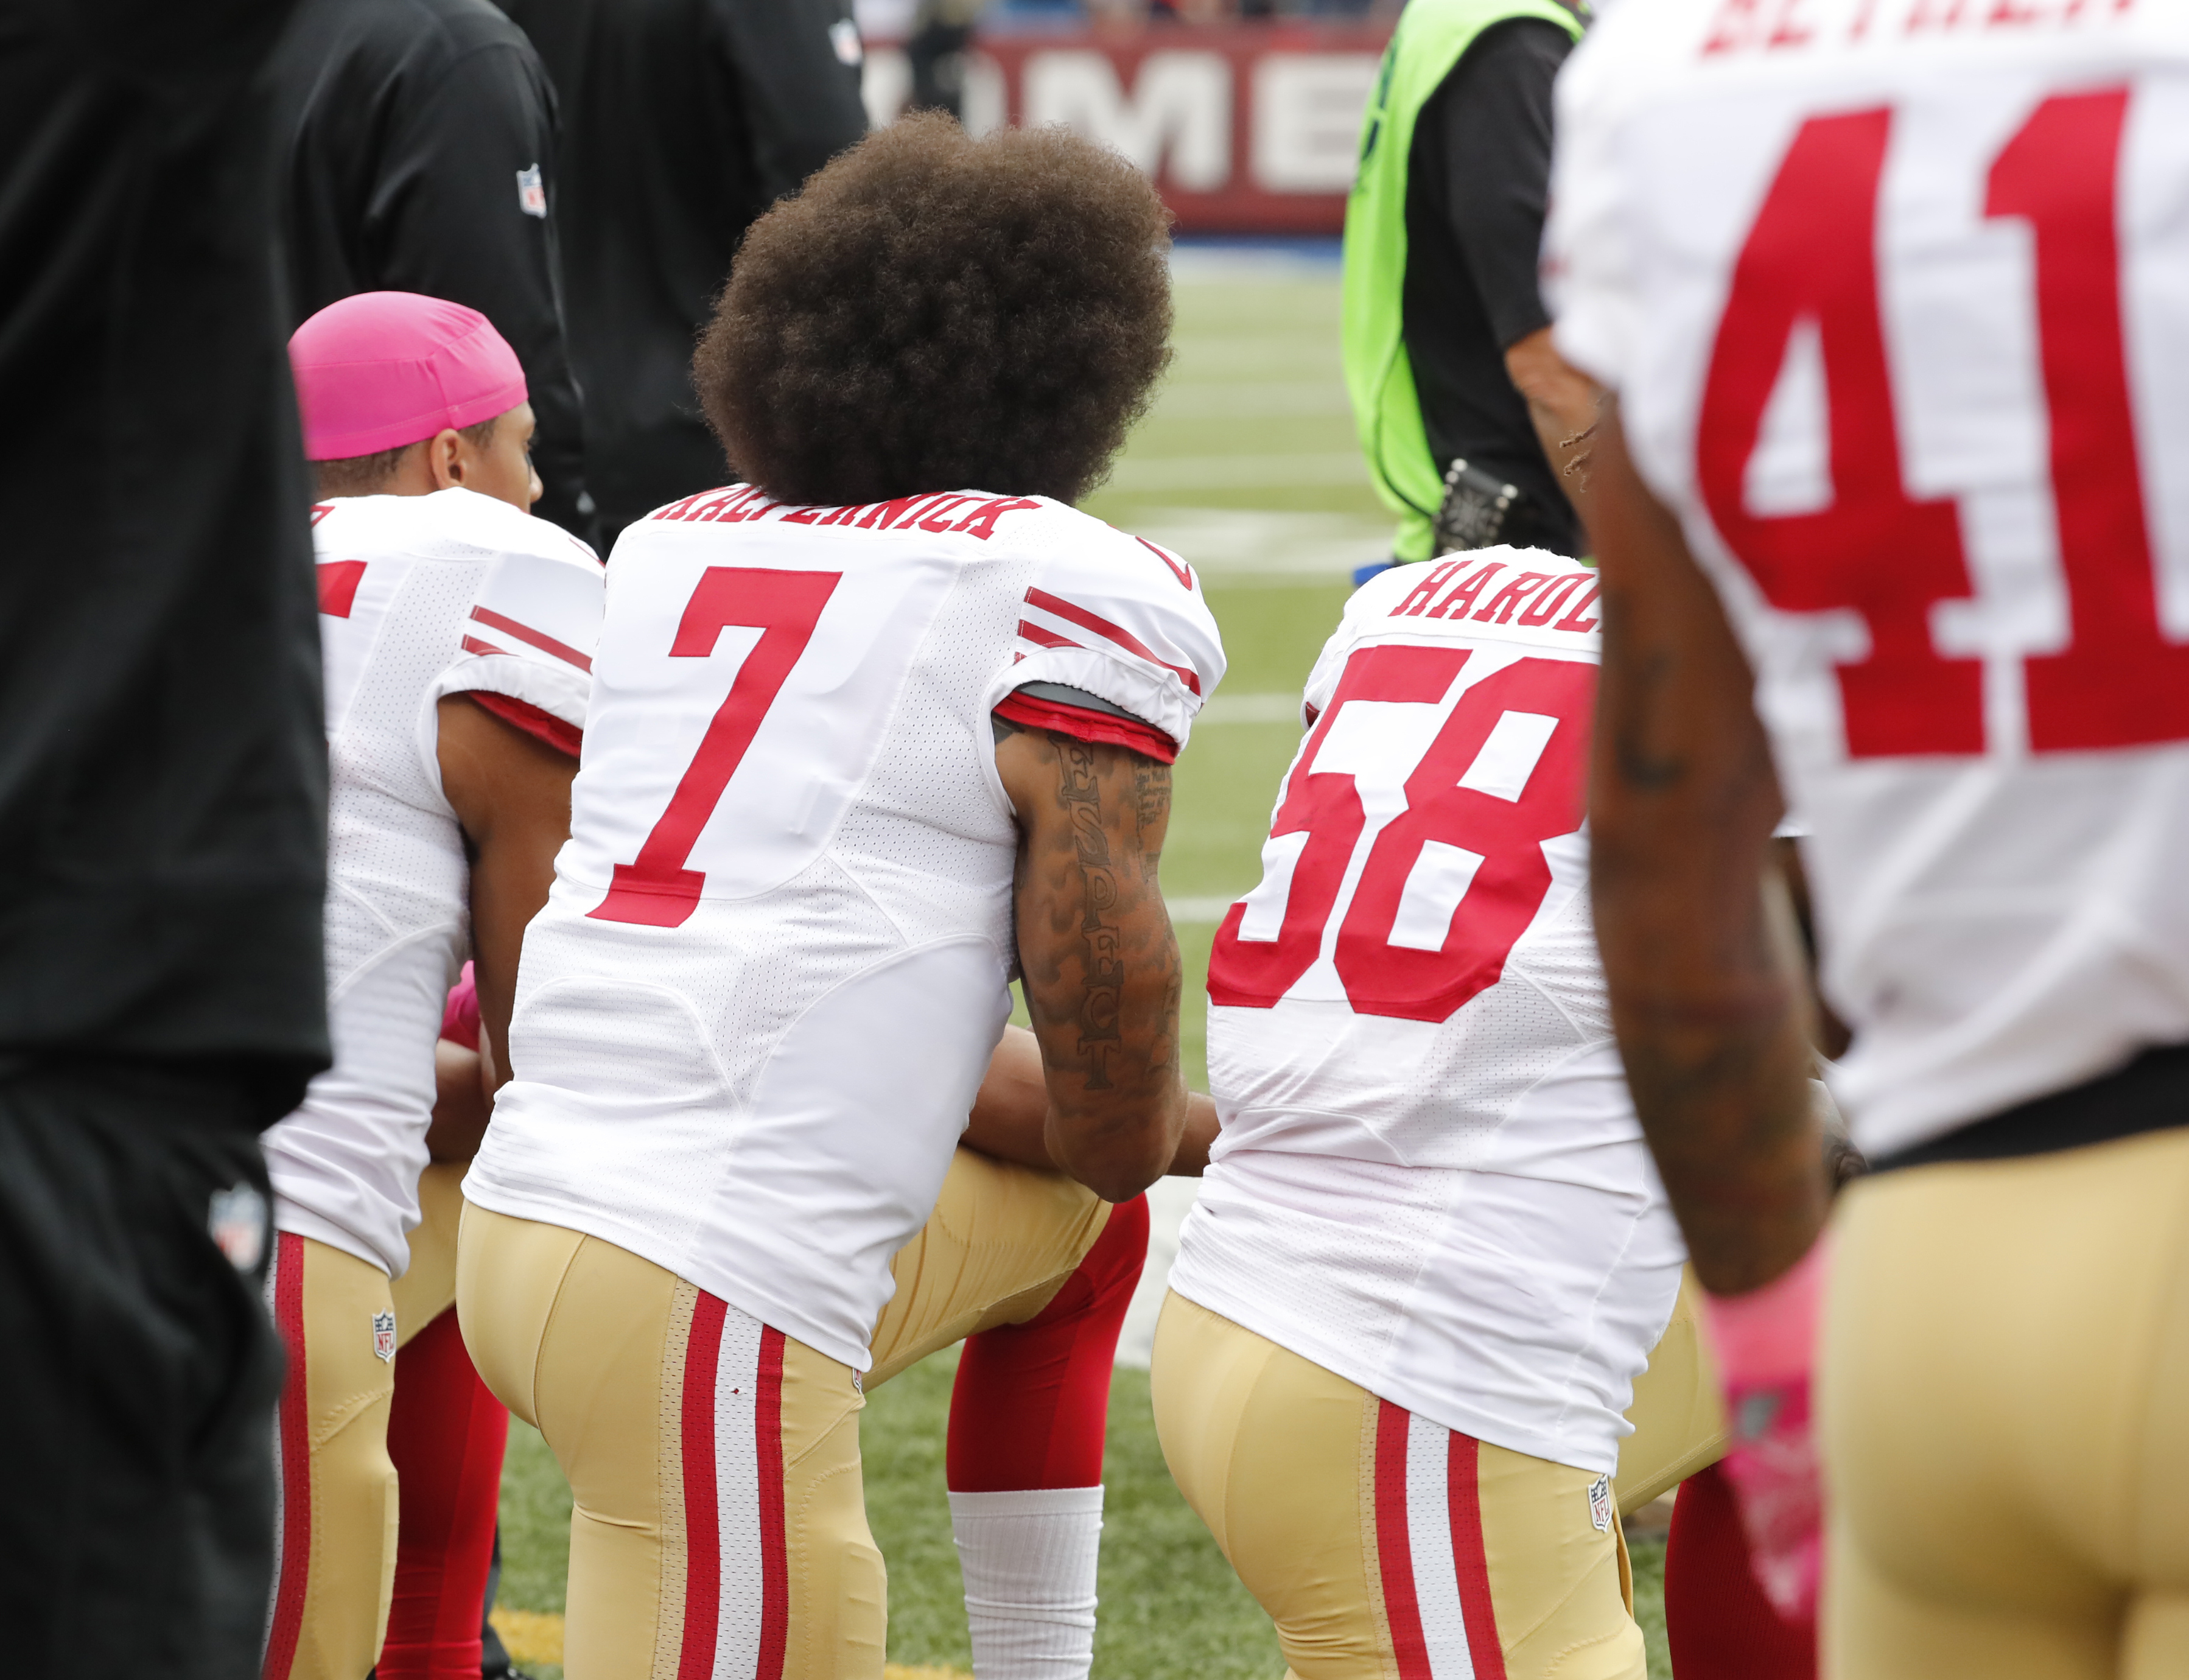 San Francisco 49ers quarterback Colin Kaepernick (7) kneels during the National Anthem before the game against the Bills at New Era Field on Sunday,Oct. 16, 2016.(Harry Scull Jr./Buffalo News)